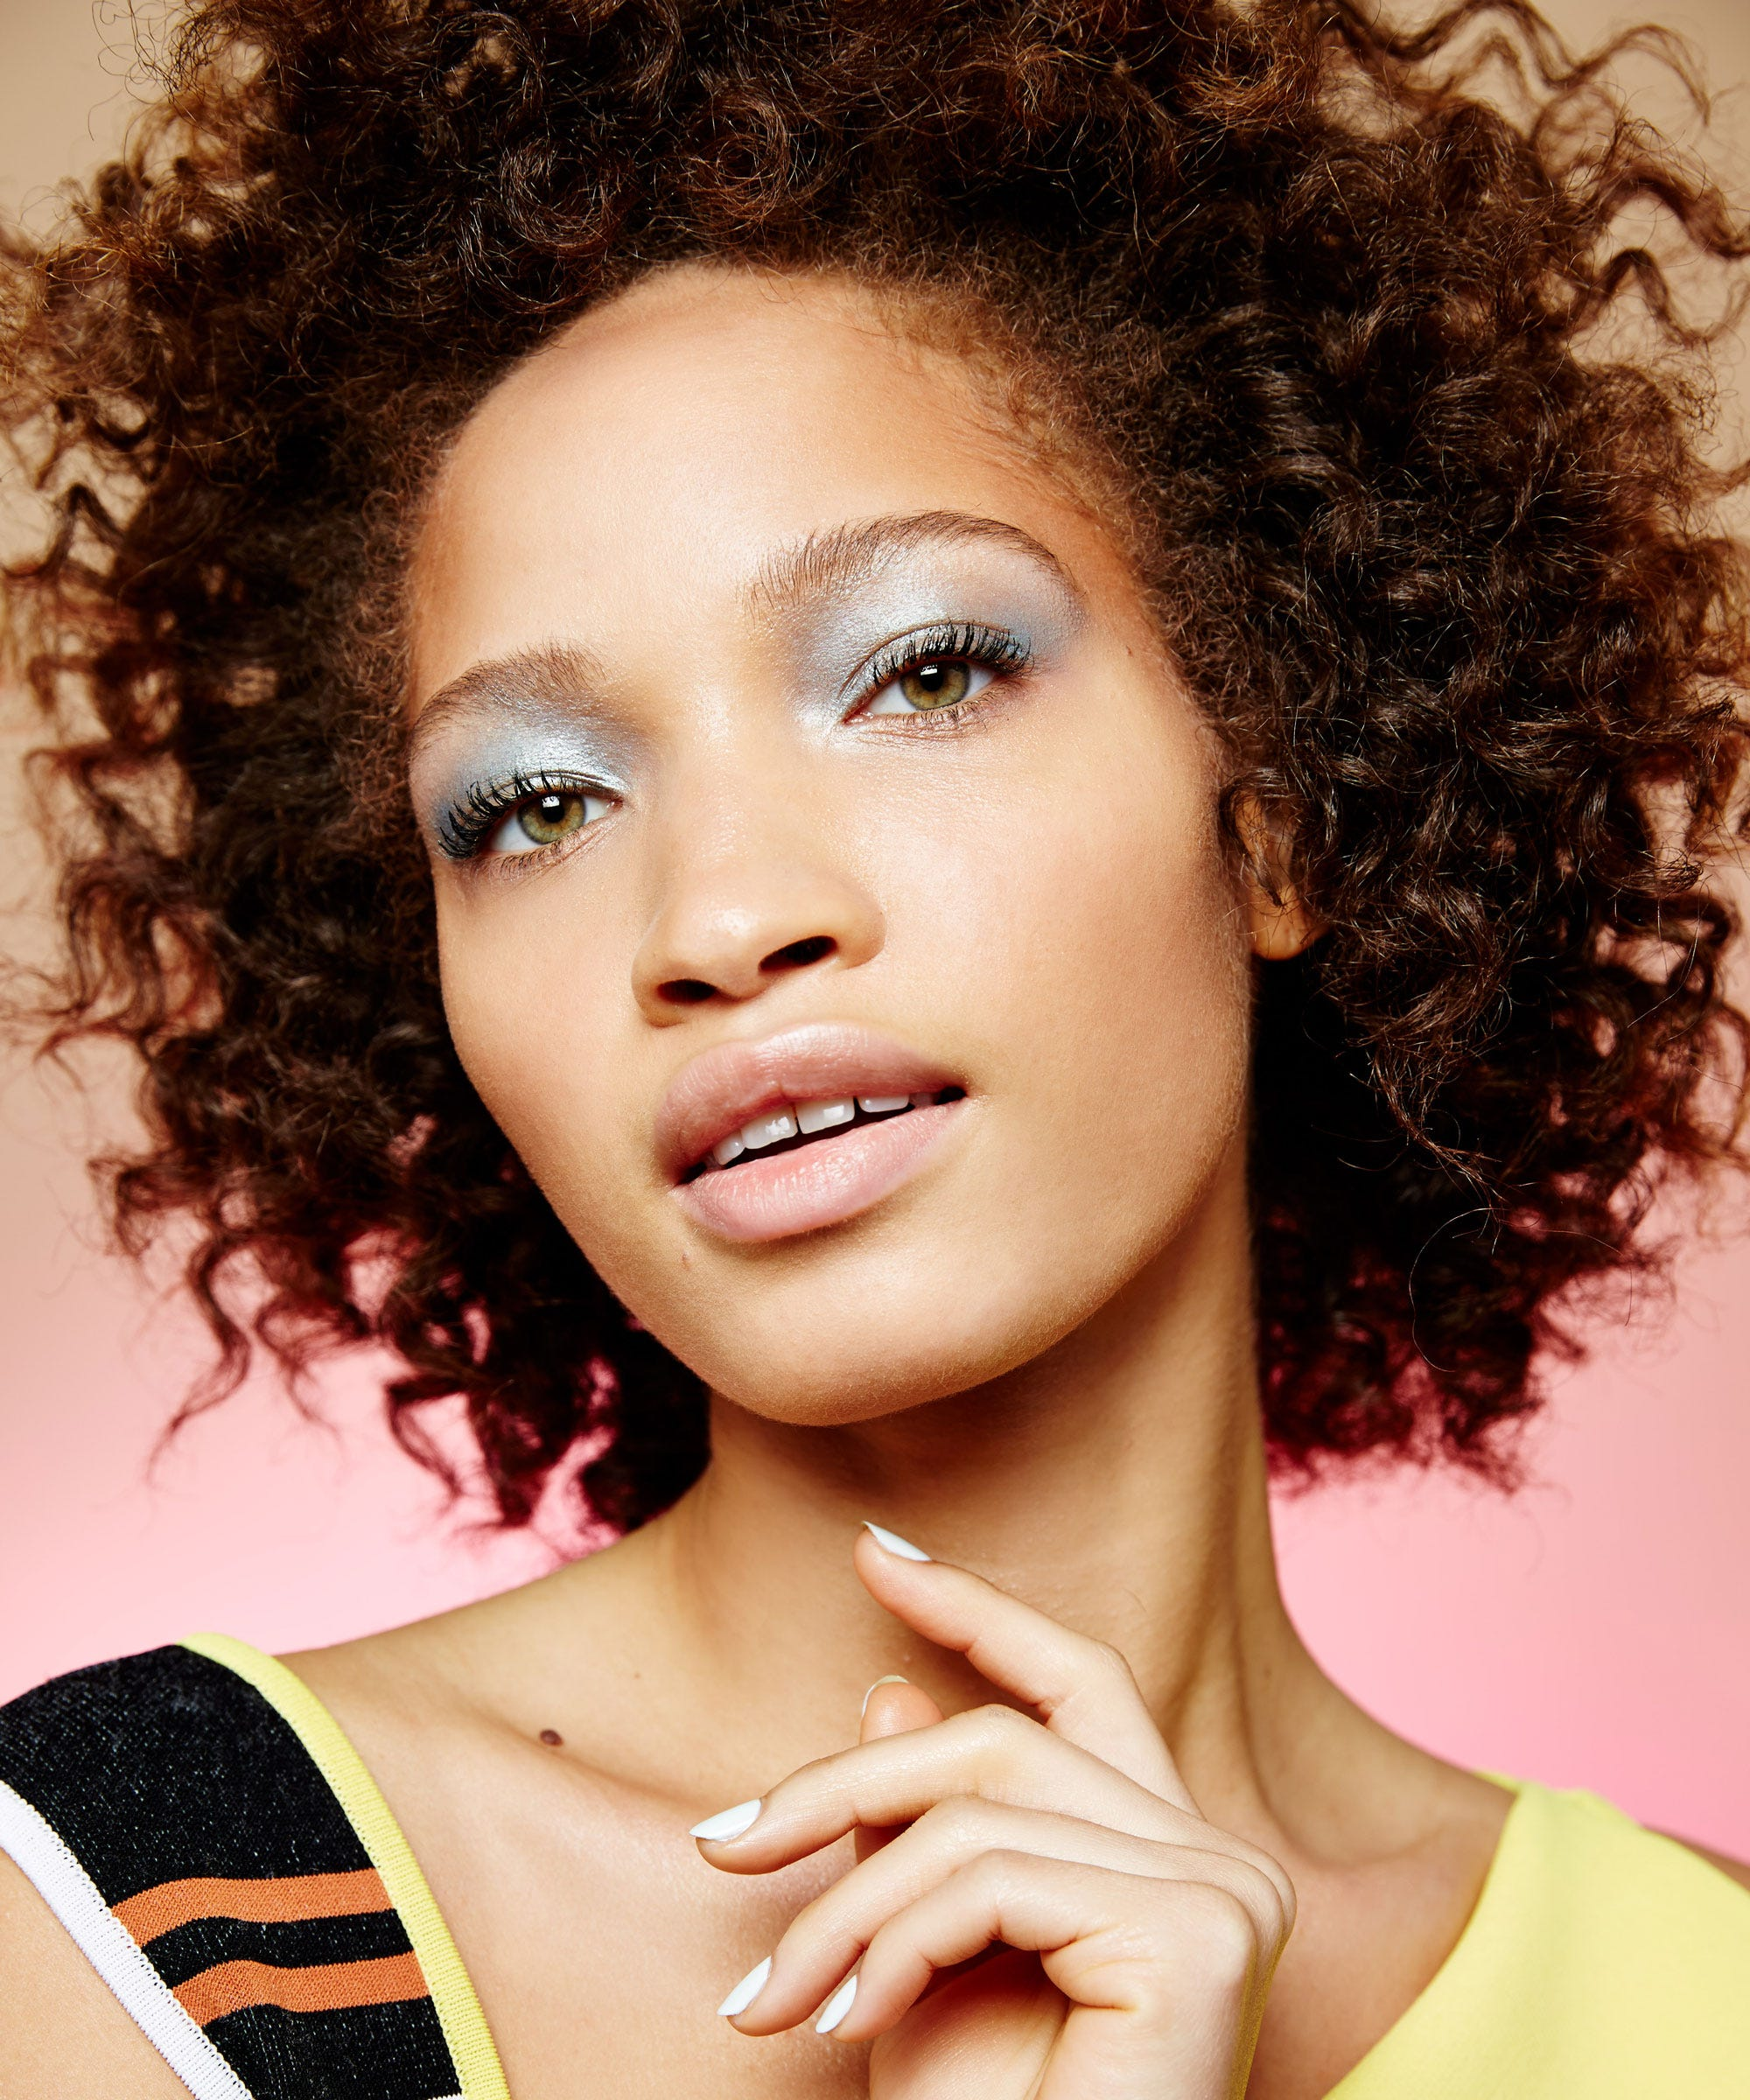 ee3c781a88 Beauty Youtube Vlogger Favorite Curl Hair Products